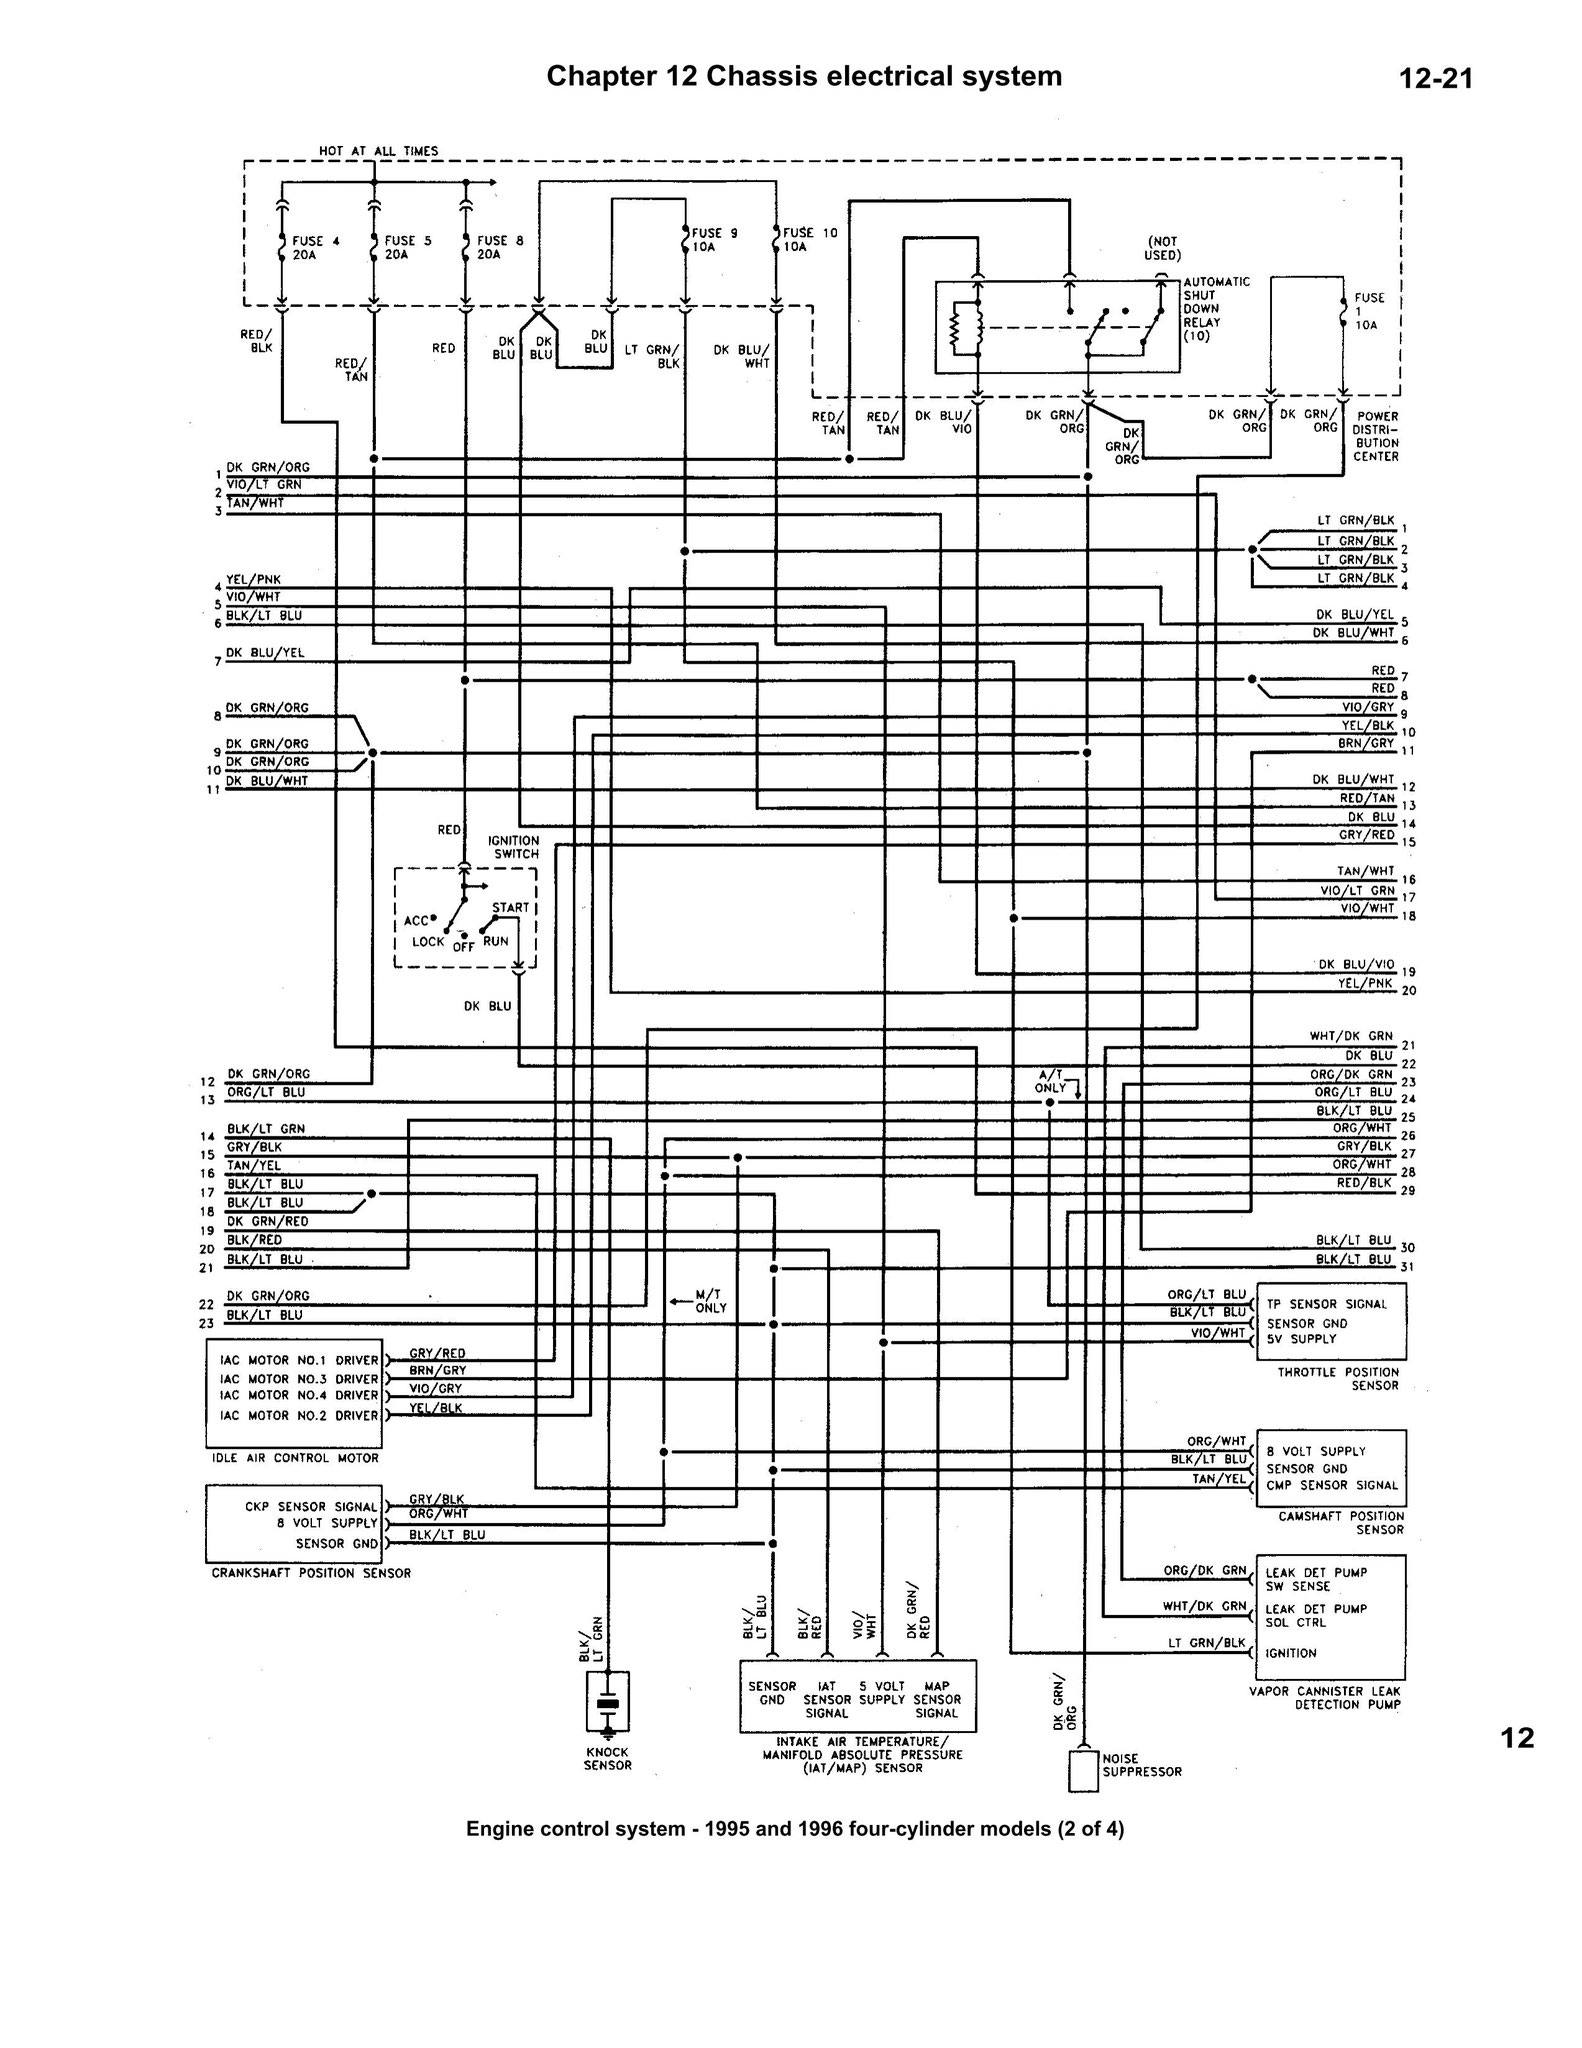 chrysler - wiring diagrams 2005 chrysler town and country wiring diagram  automotive manuals - wiring diagrams